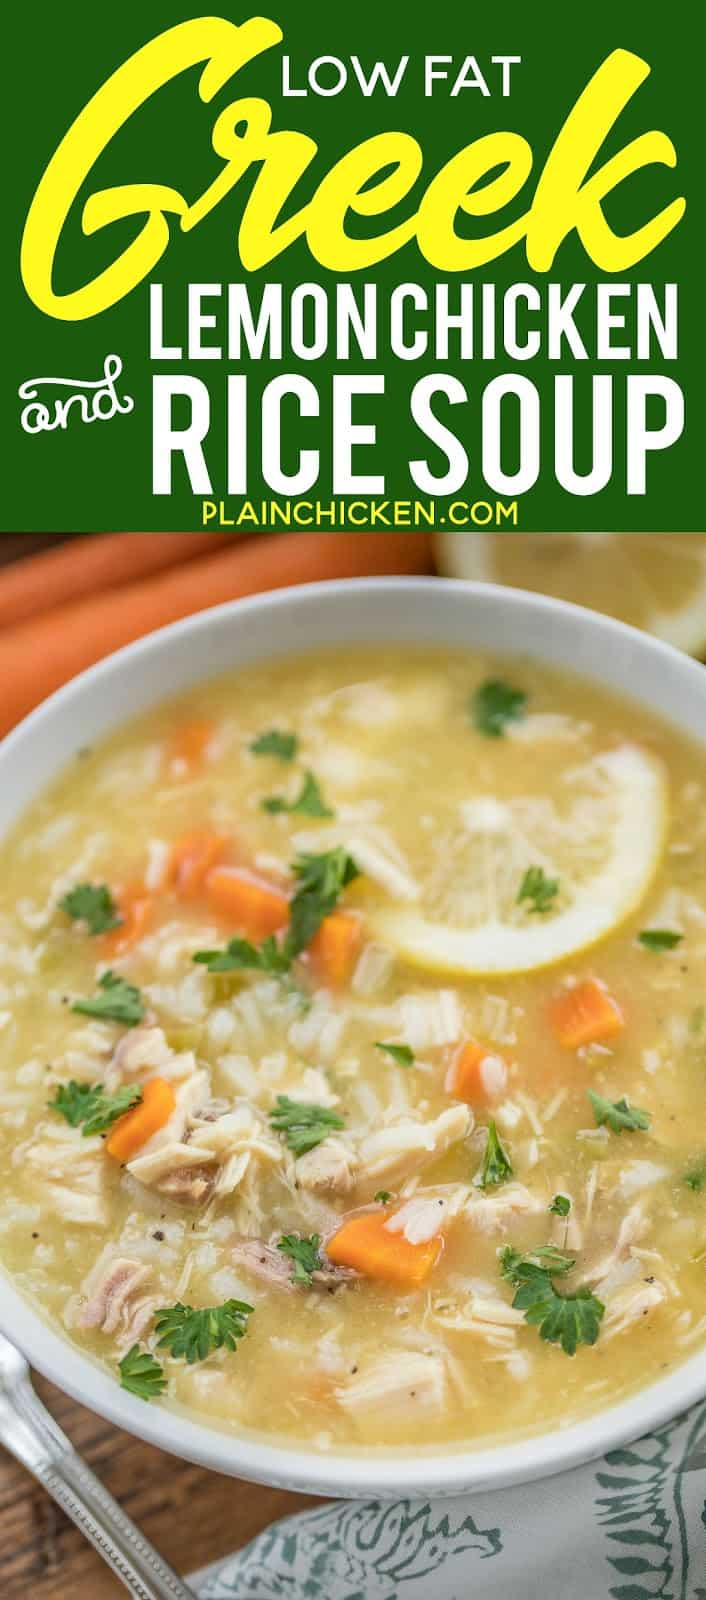 Low Fat Greek Lemon Chicken & Rice Soup - seriously the most delicious chicken soup EVER! Ready in 20 minutes! Chicken, chicken broth, carrots, celery, Greek seasoning, cream of chicken soup, garlic, lemon juice and rice. Made this for dinner and everyone could not stop raving about it! We make this at least twice a month now. Can freeze leftovers. #chickensoup #soup